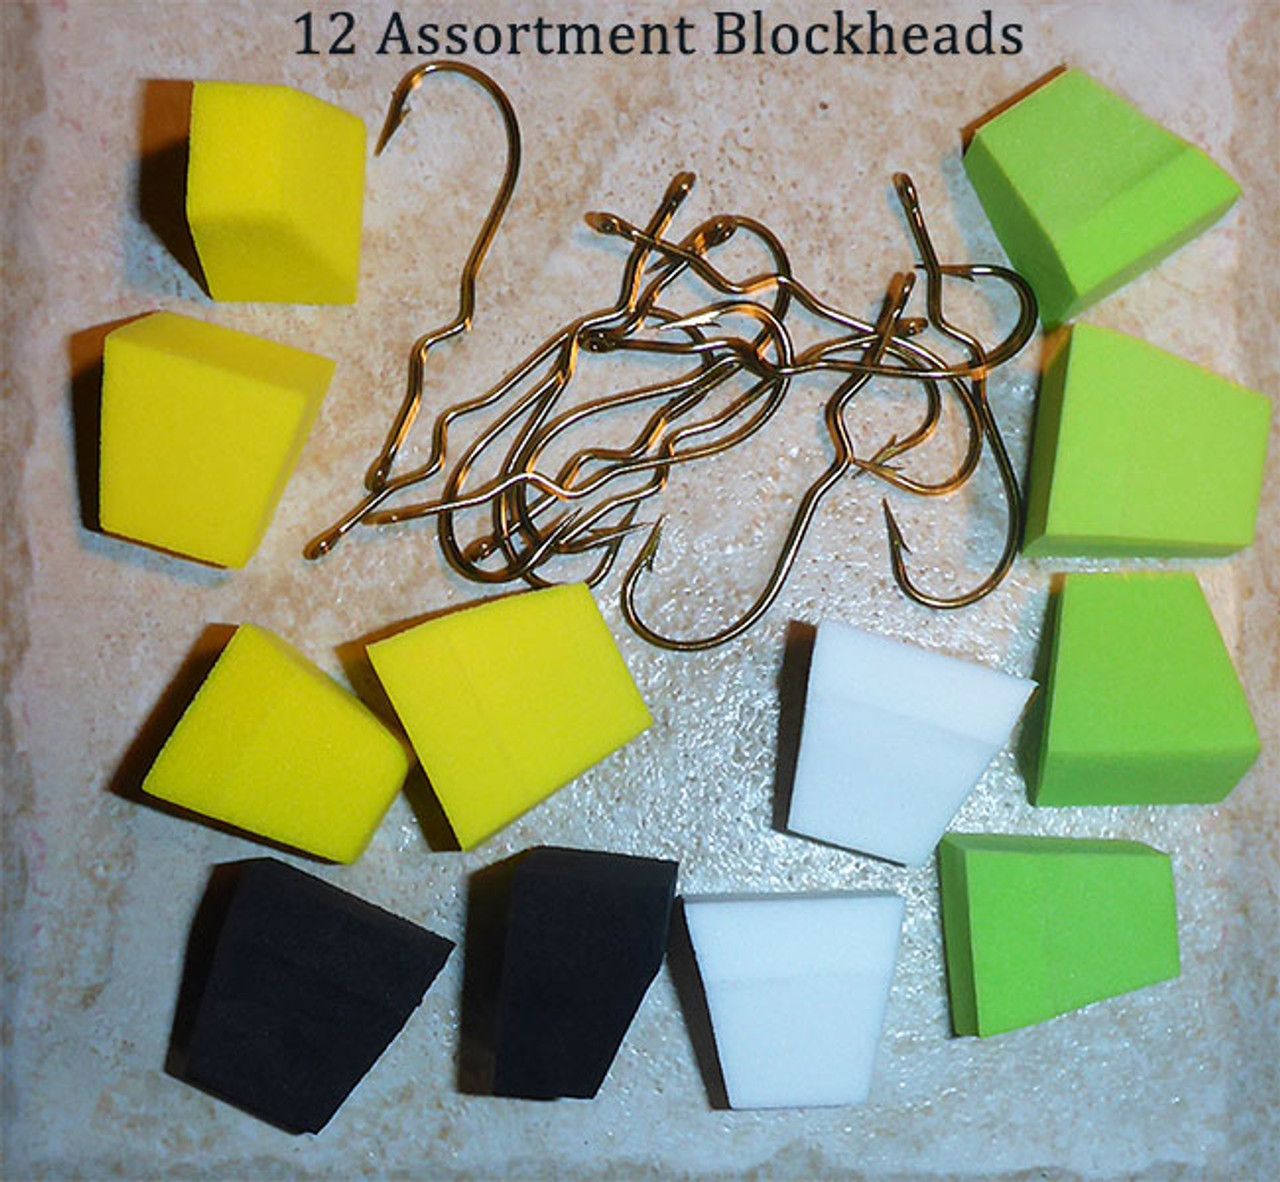 Foam Blockhead Popper Kits